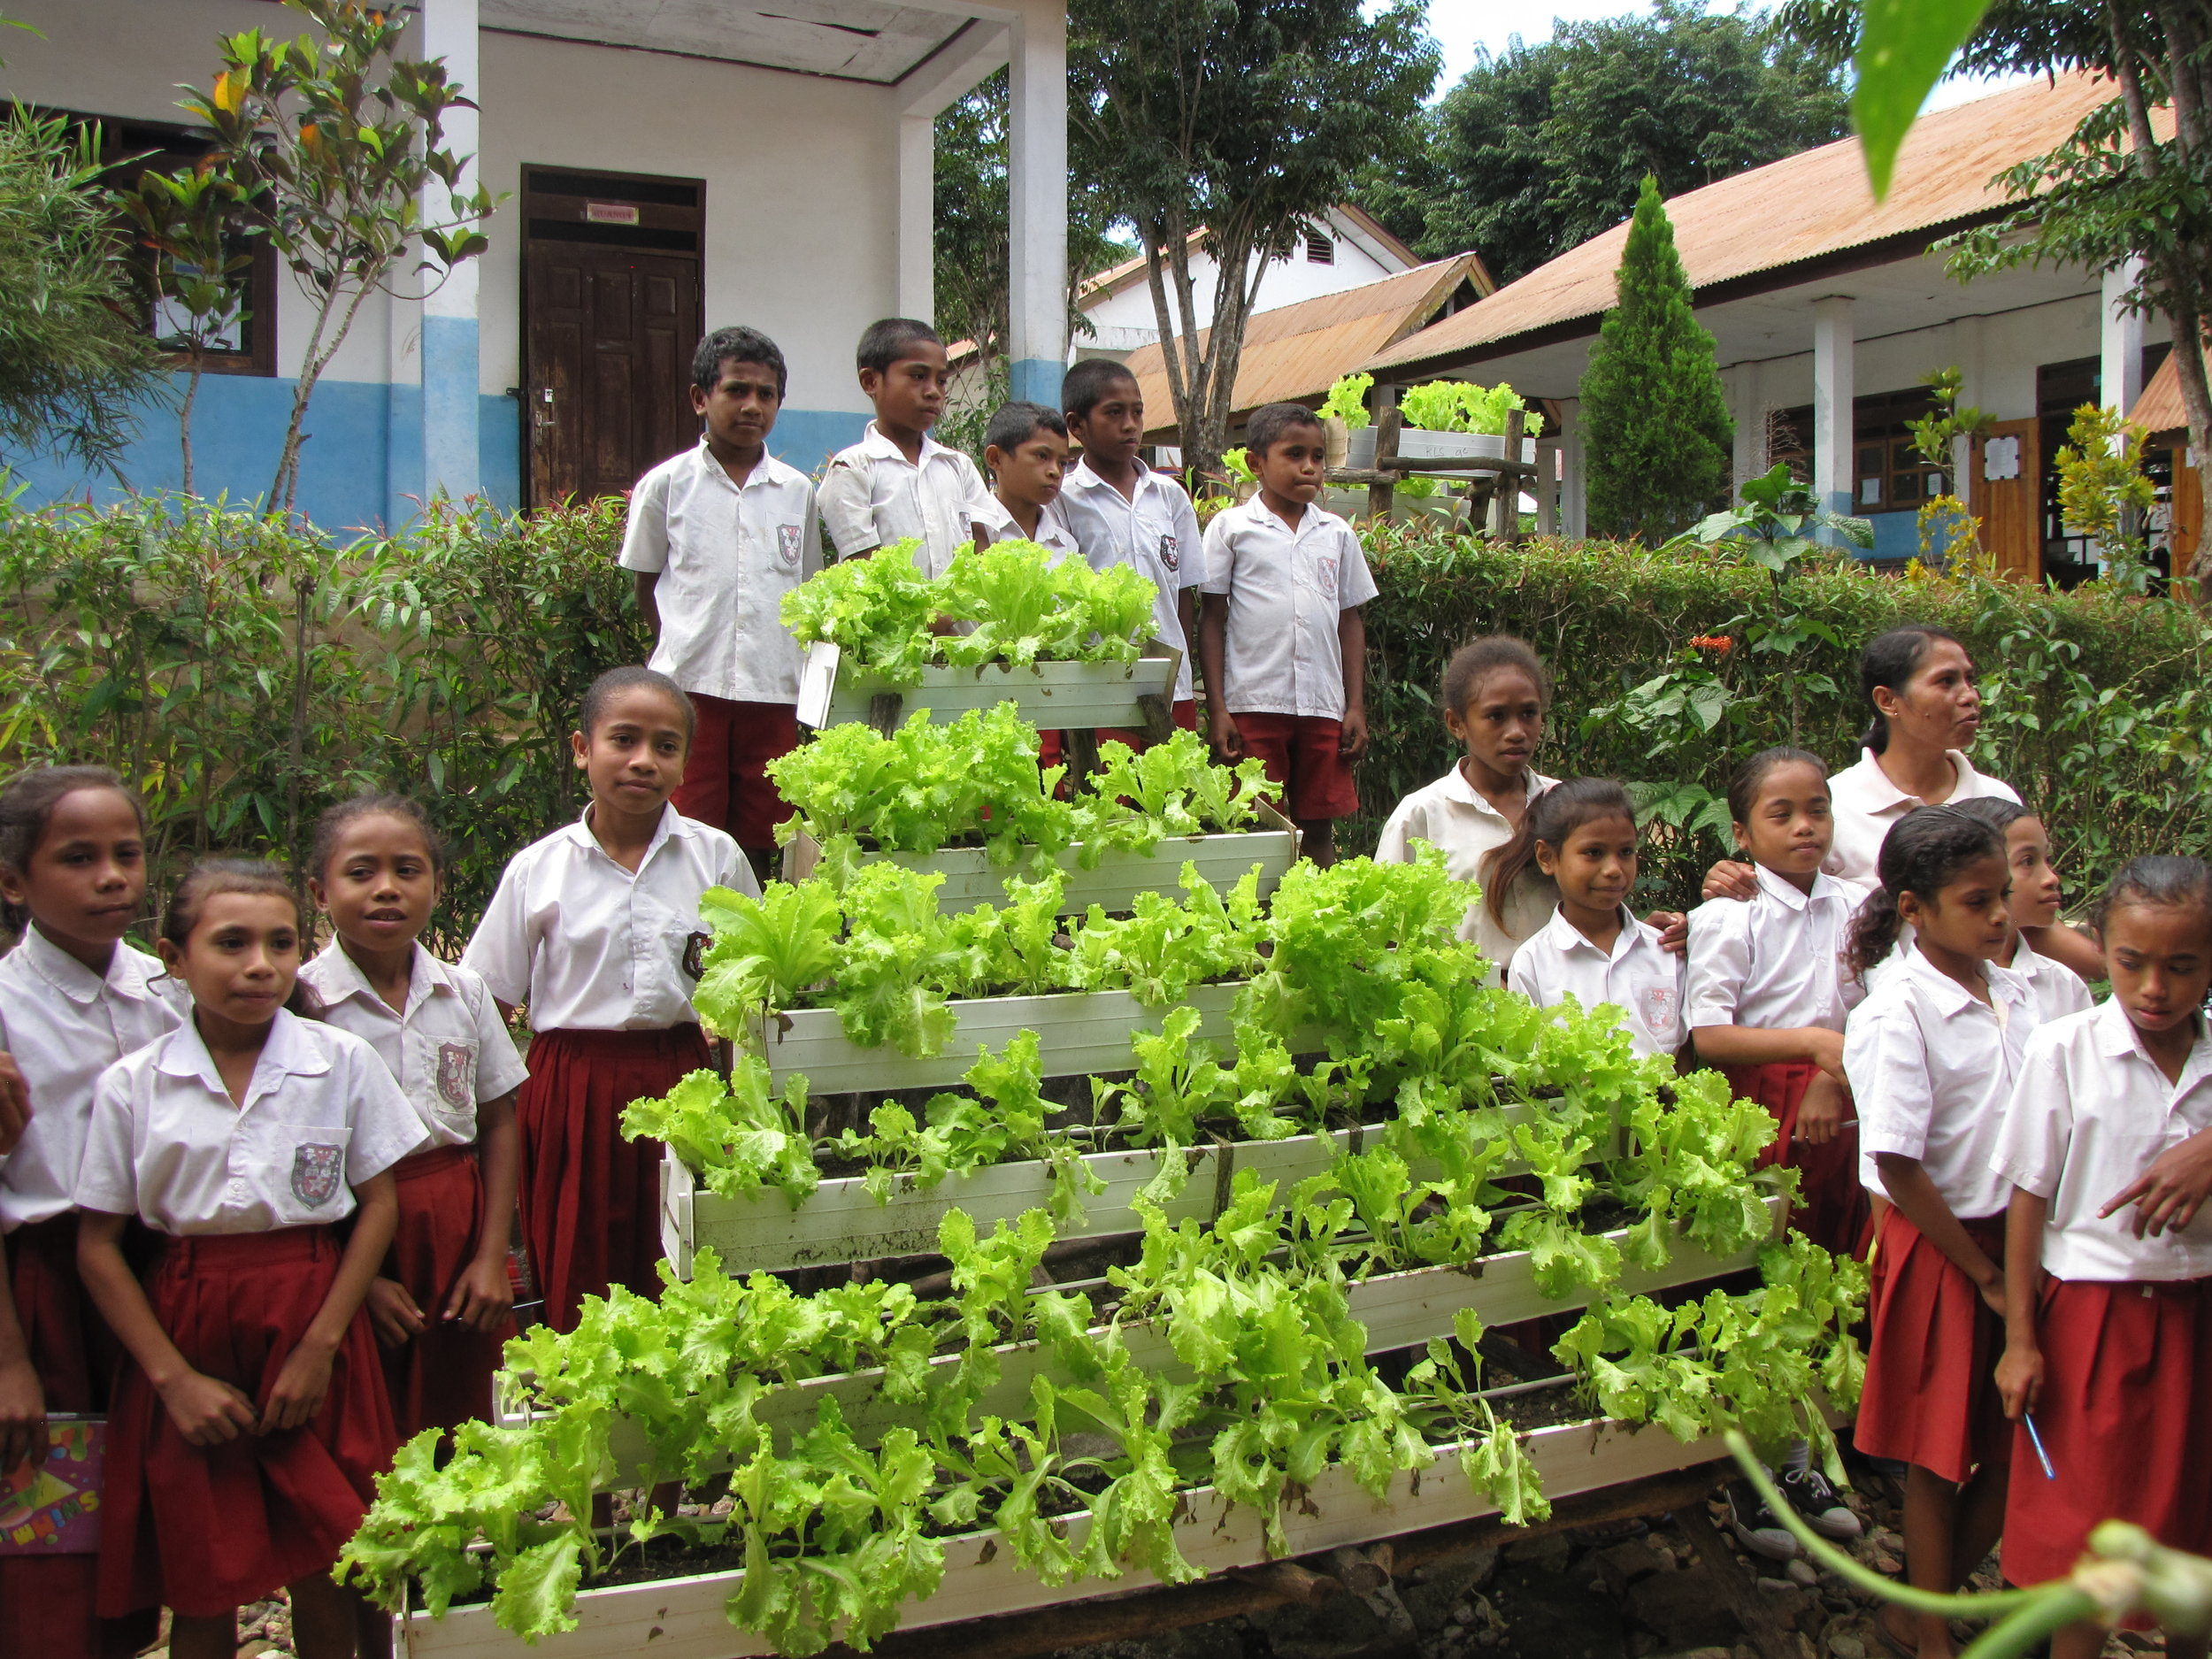 Primary school students in Timor Indonesia are growing their own vegetables for consumption and sales to continue their climate change projects in the school